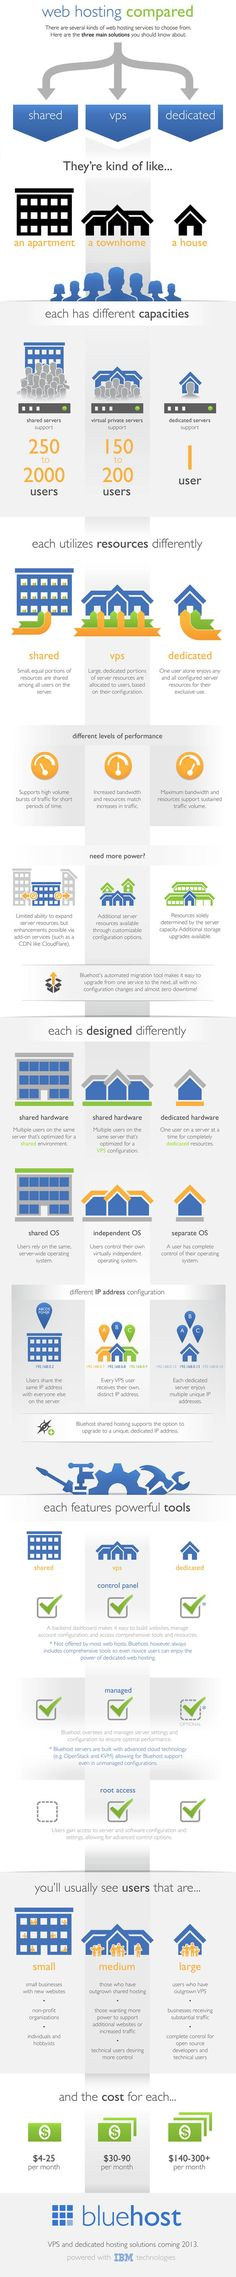 Web hosting compared infographic